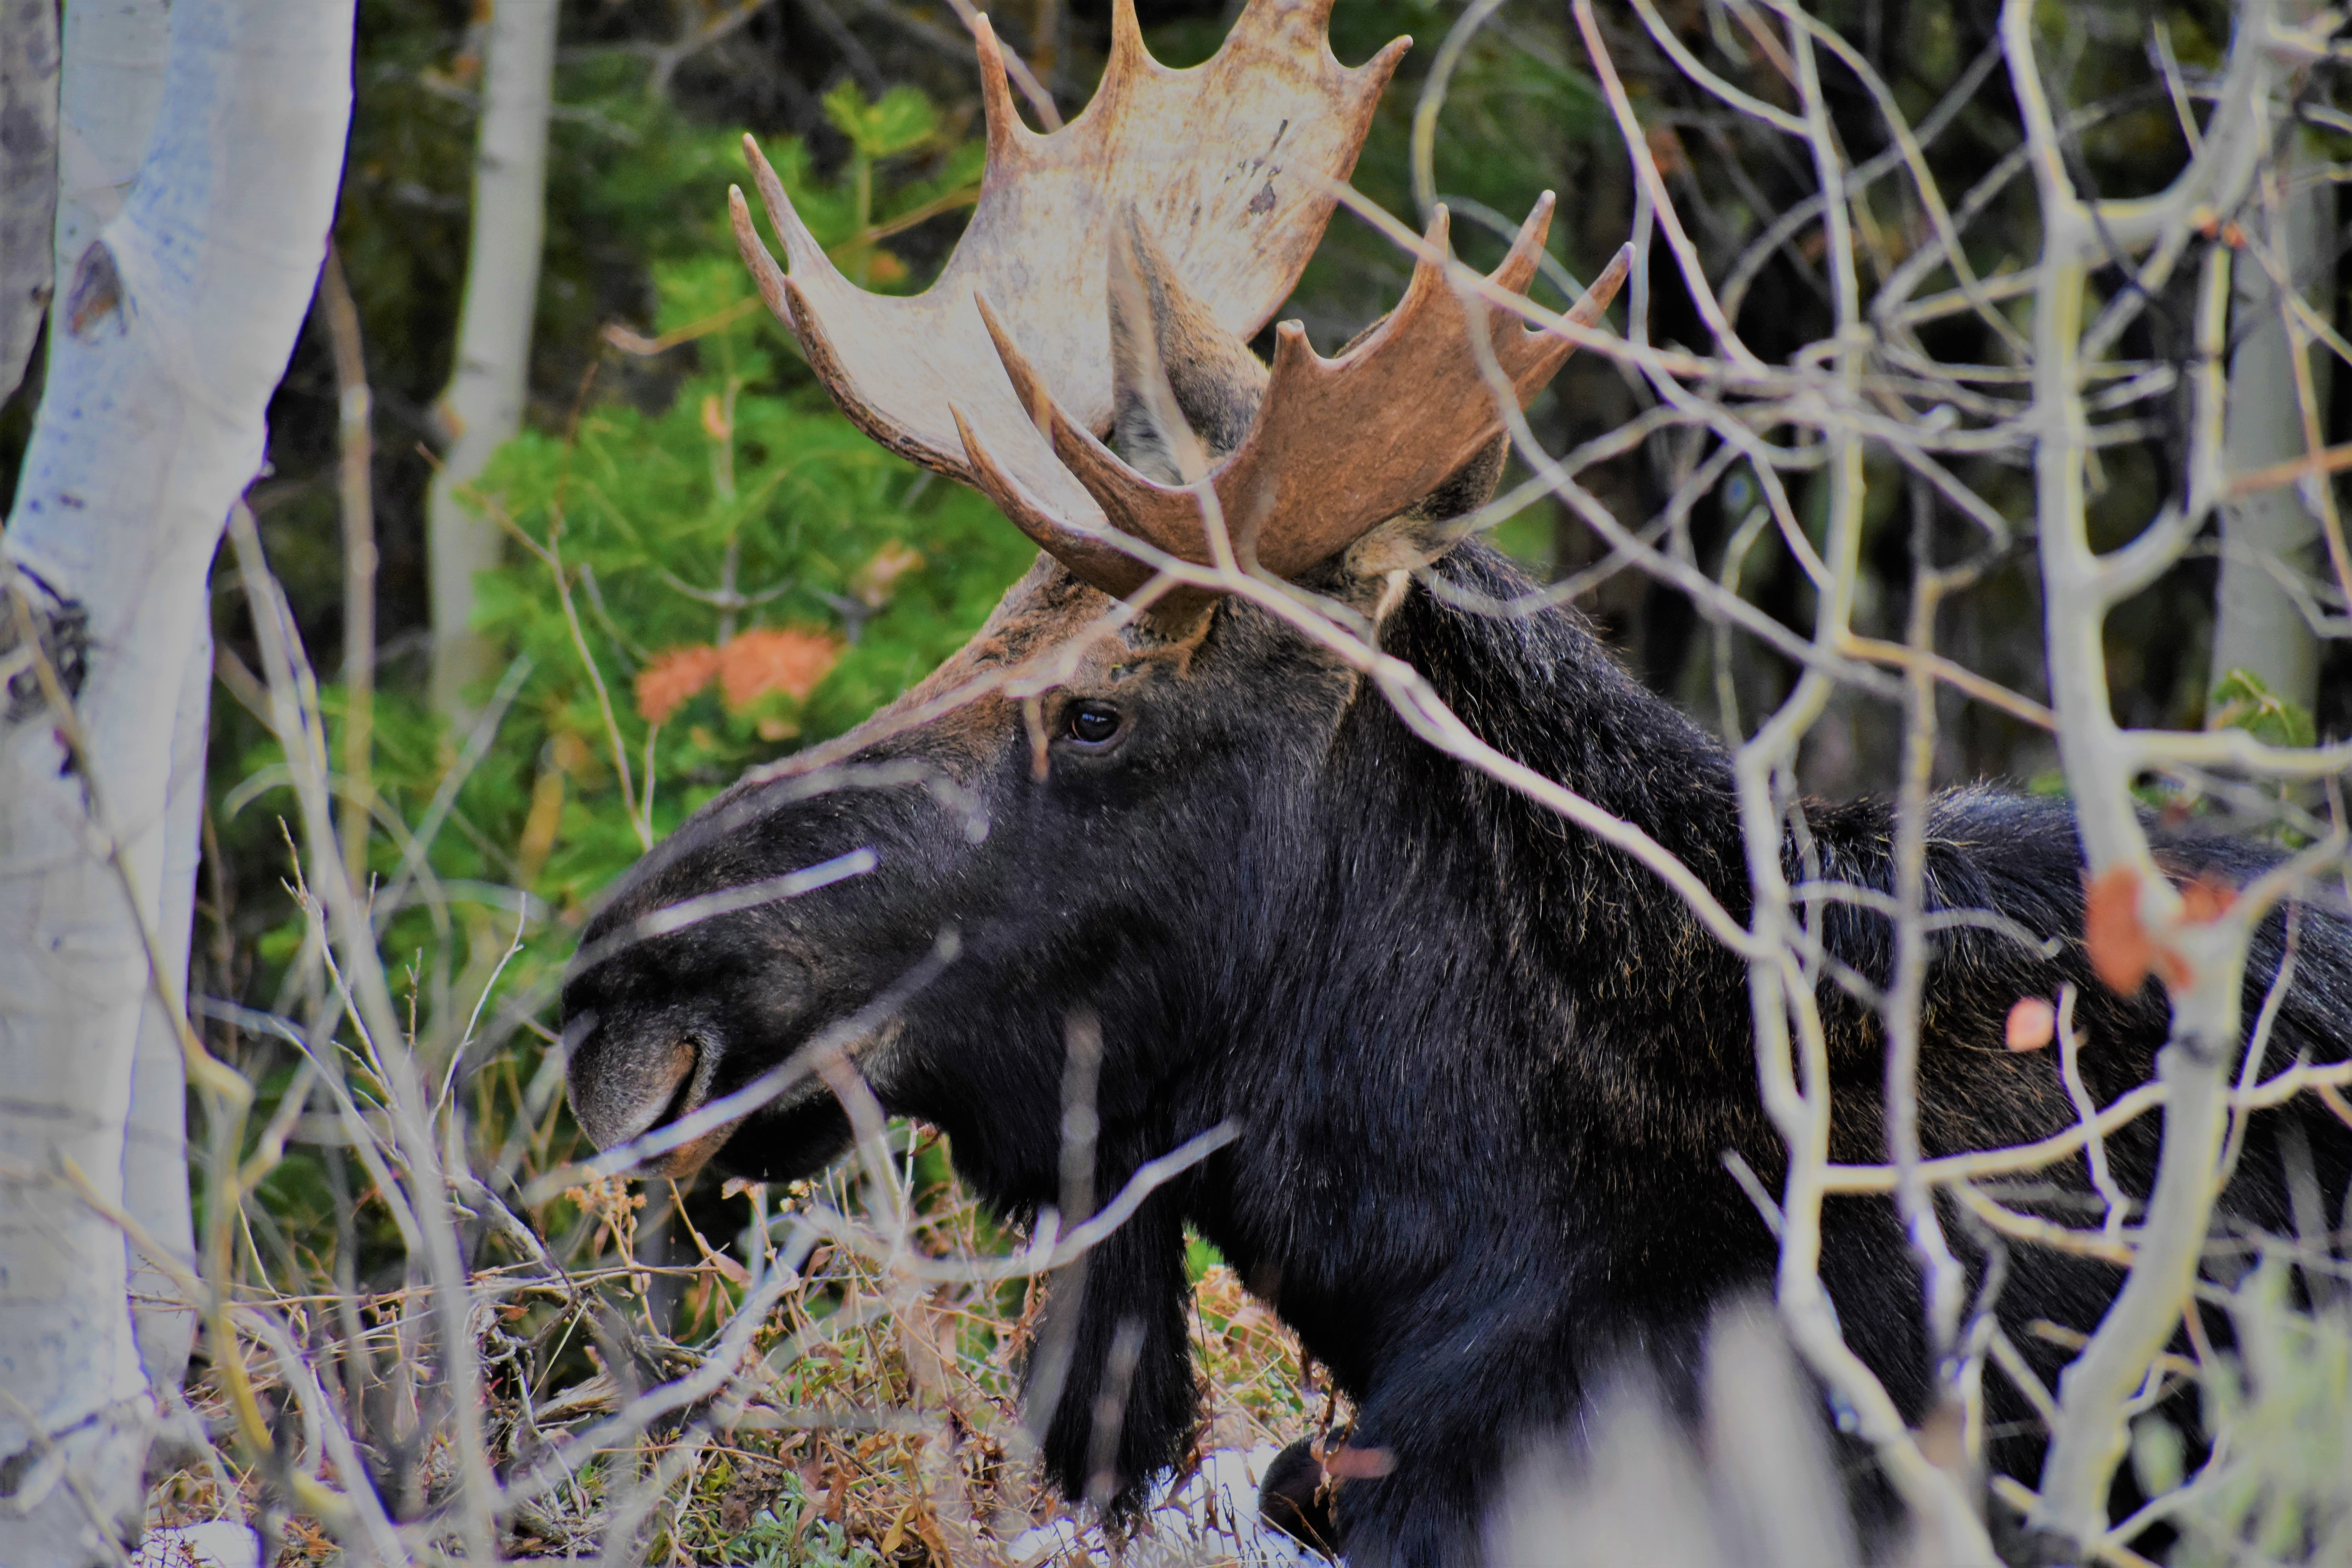 black and brown moose near tree branches